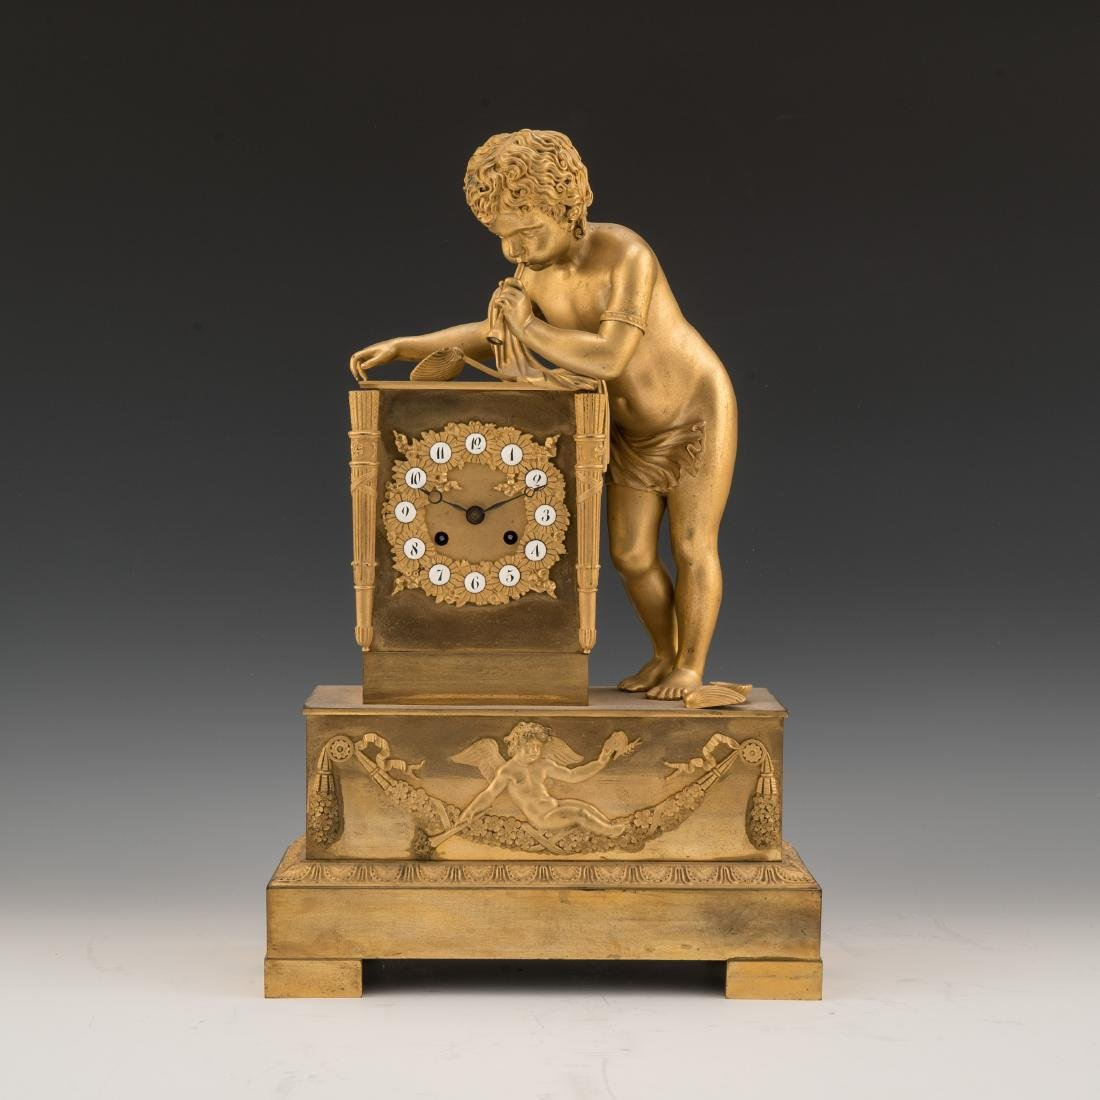 A FRENCH EMPIRE-STYLE GILT BRONZE FIGURAL MANTLE CLOCK,